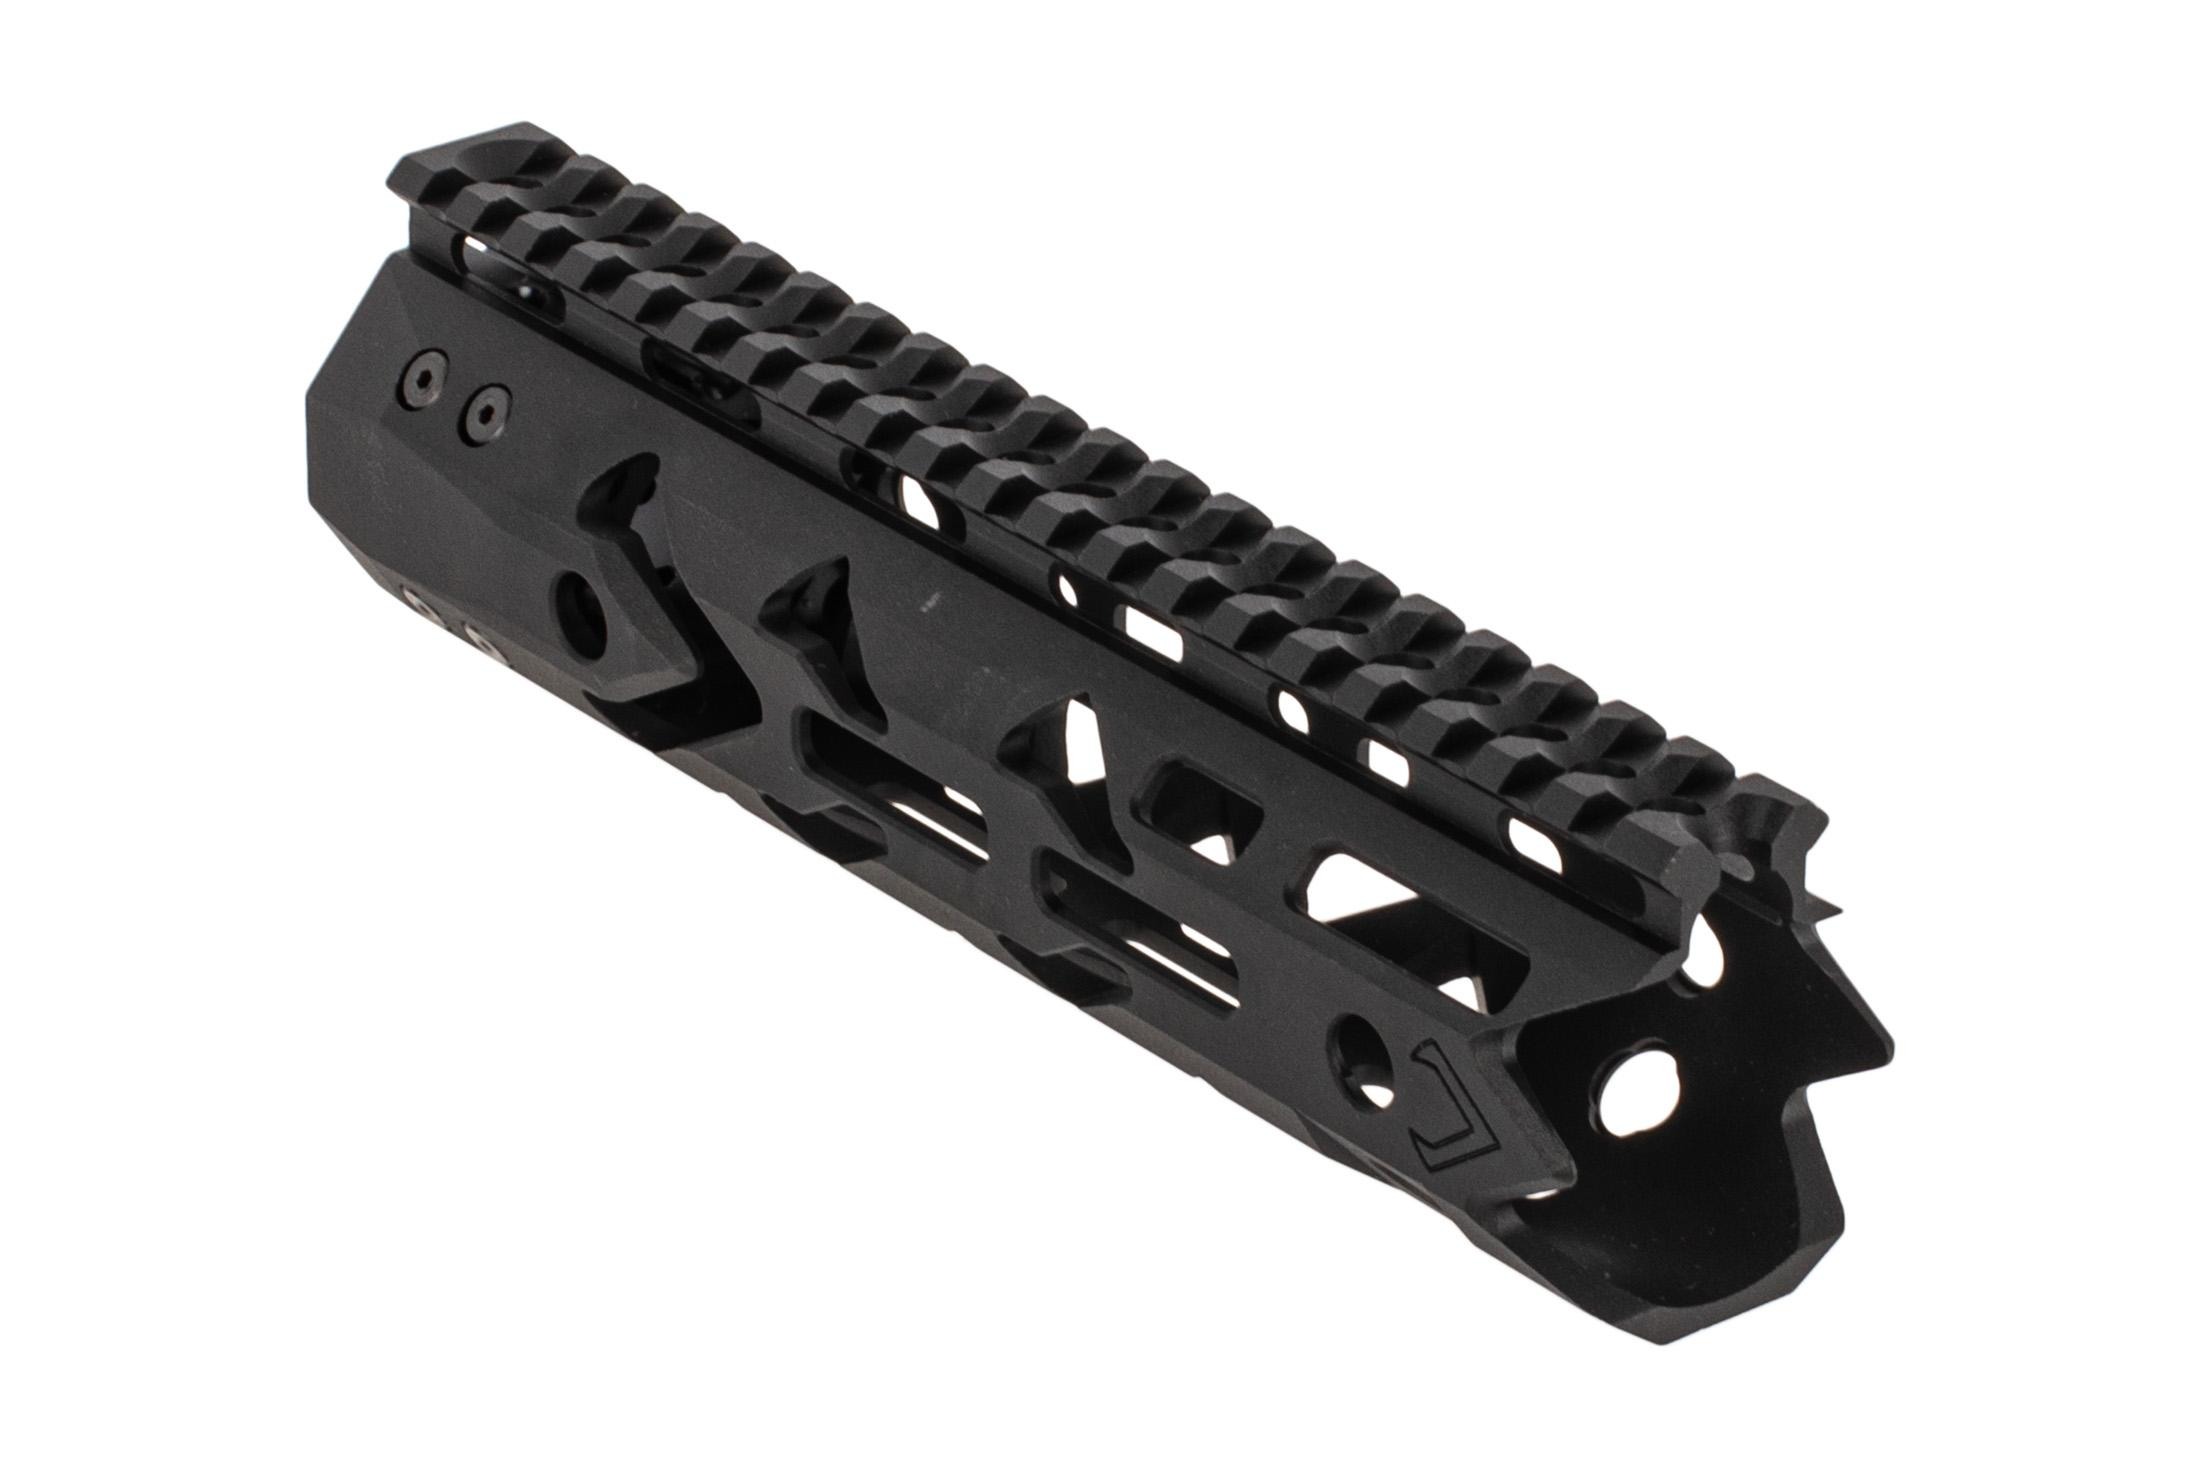 F1 Firearms D7M Dynamis Handguard 8 inch features a scalloped picatinny top rail